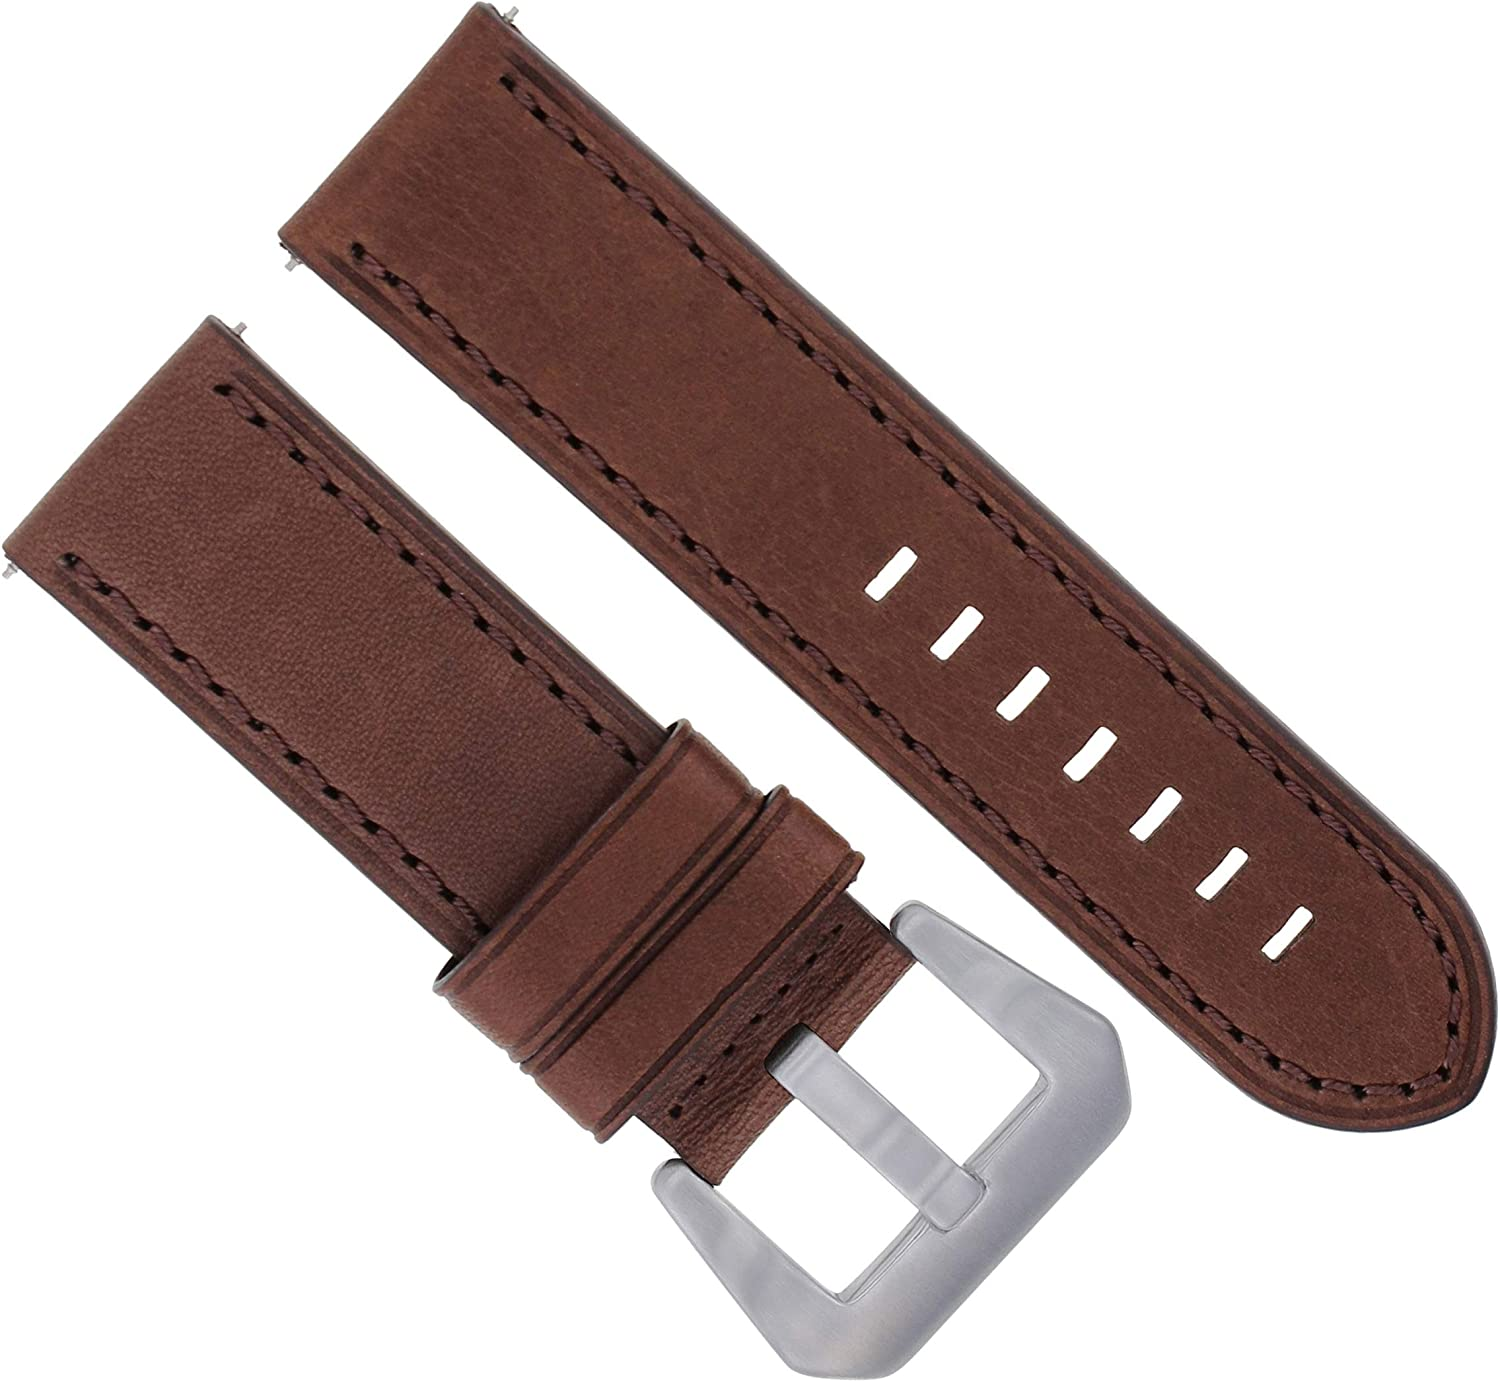 Fixed price Max 51% OFF for sale 22mm Leather Watch Band Strap Compatible 111 15 with 119 Panerai